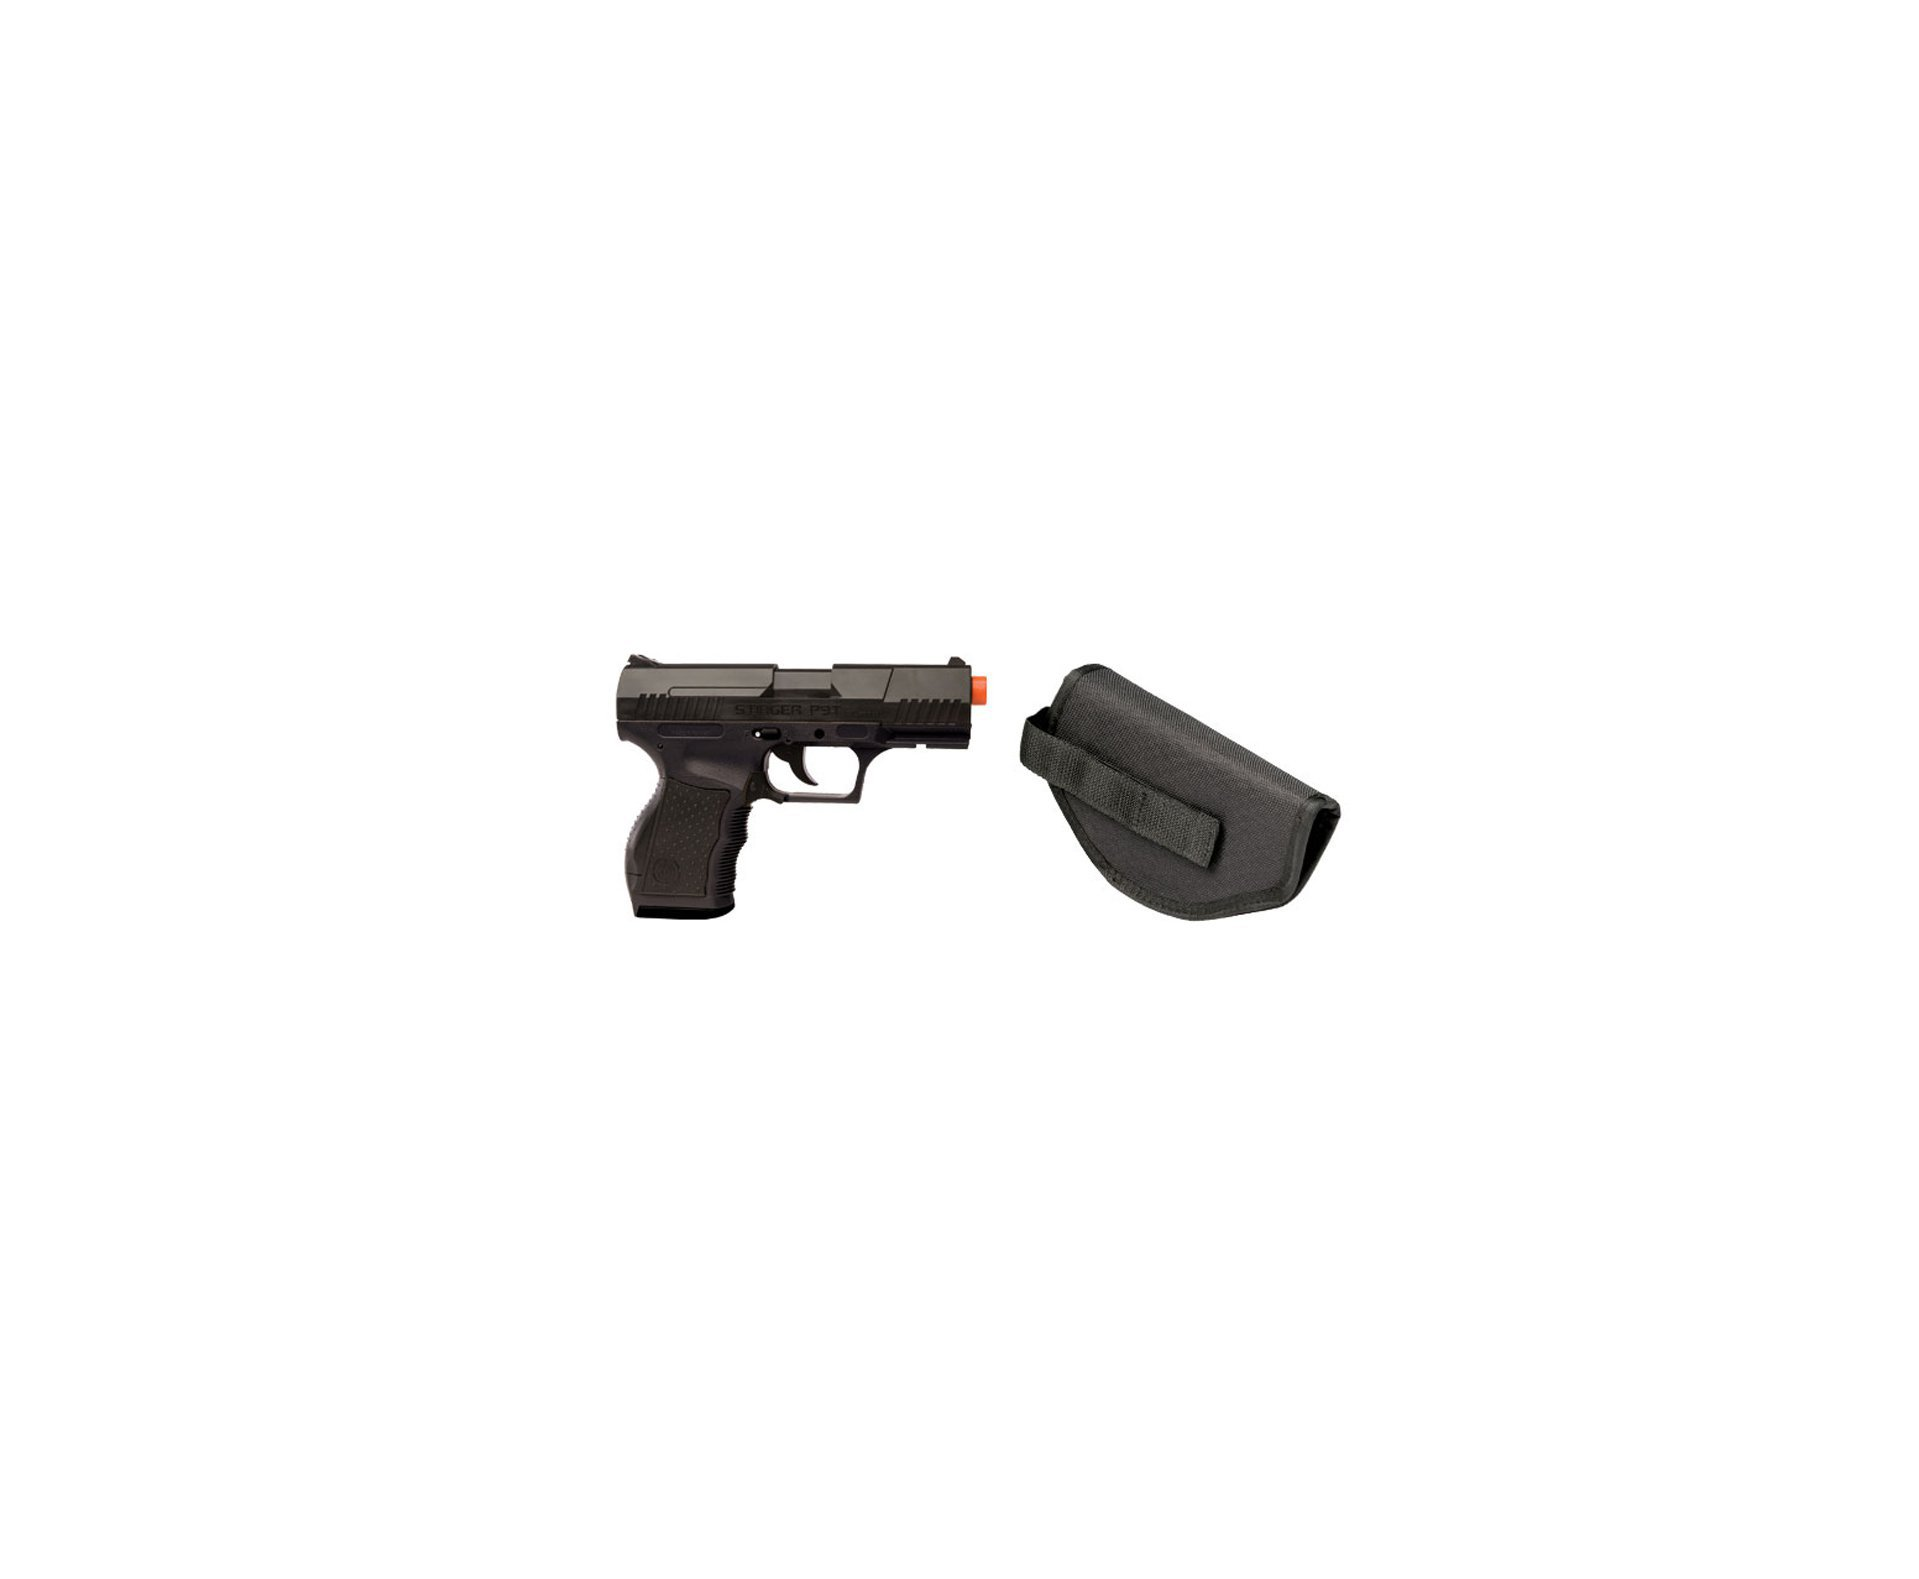 Pistola De Airsoft Stinger P9t - Calibre 6 Mm - Crosman